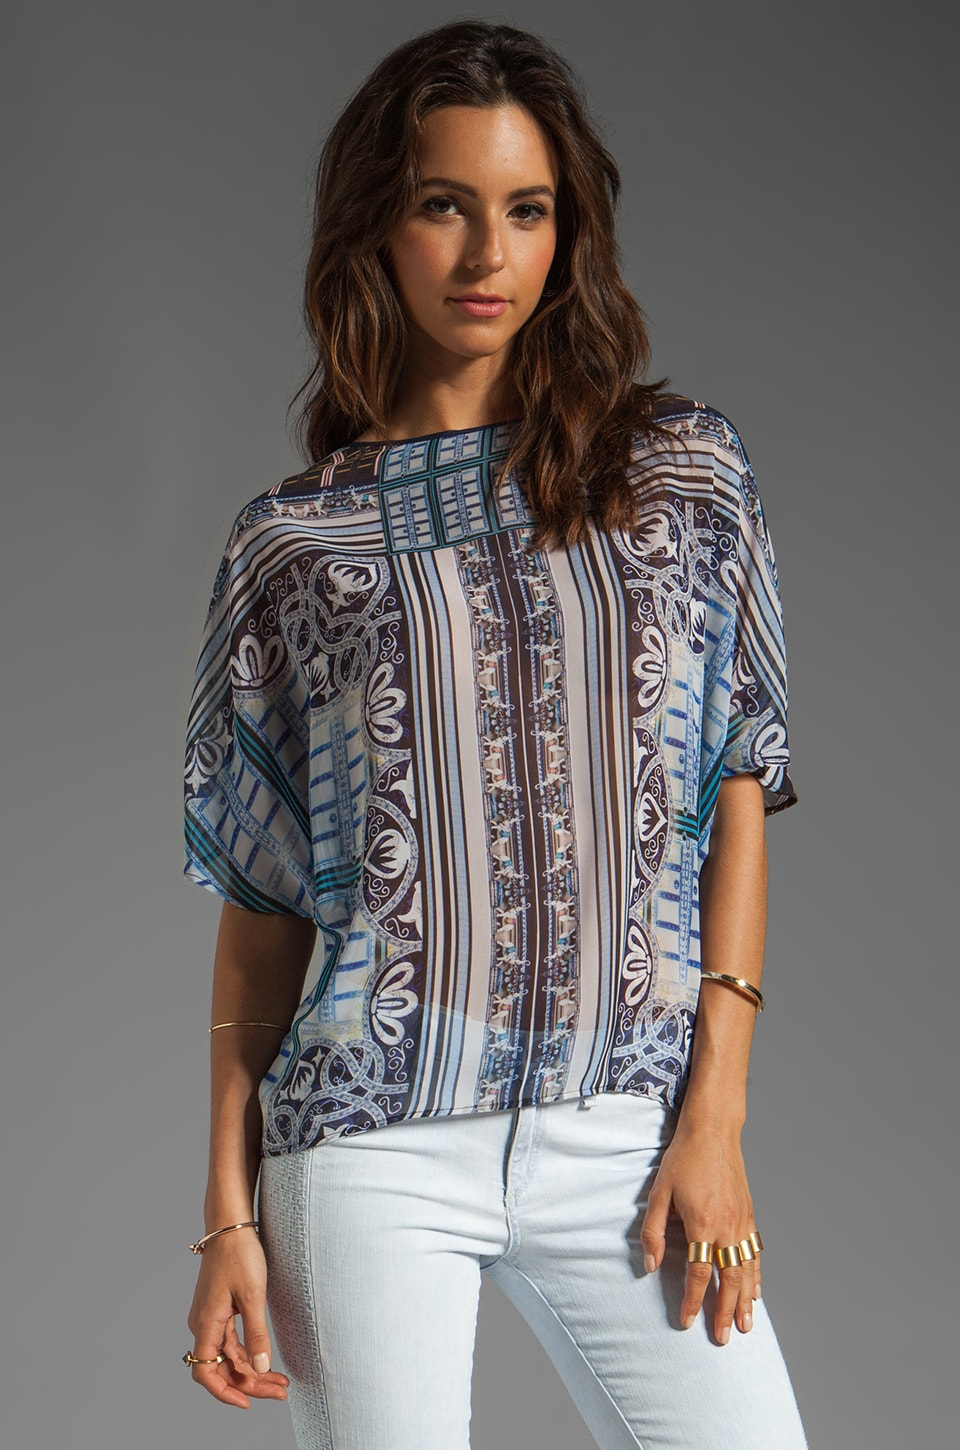 Clover Canyon Ornate Filagree Top en Imprimé